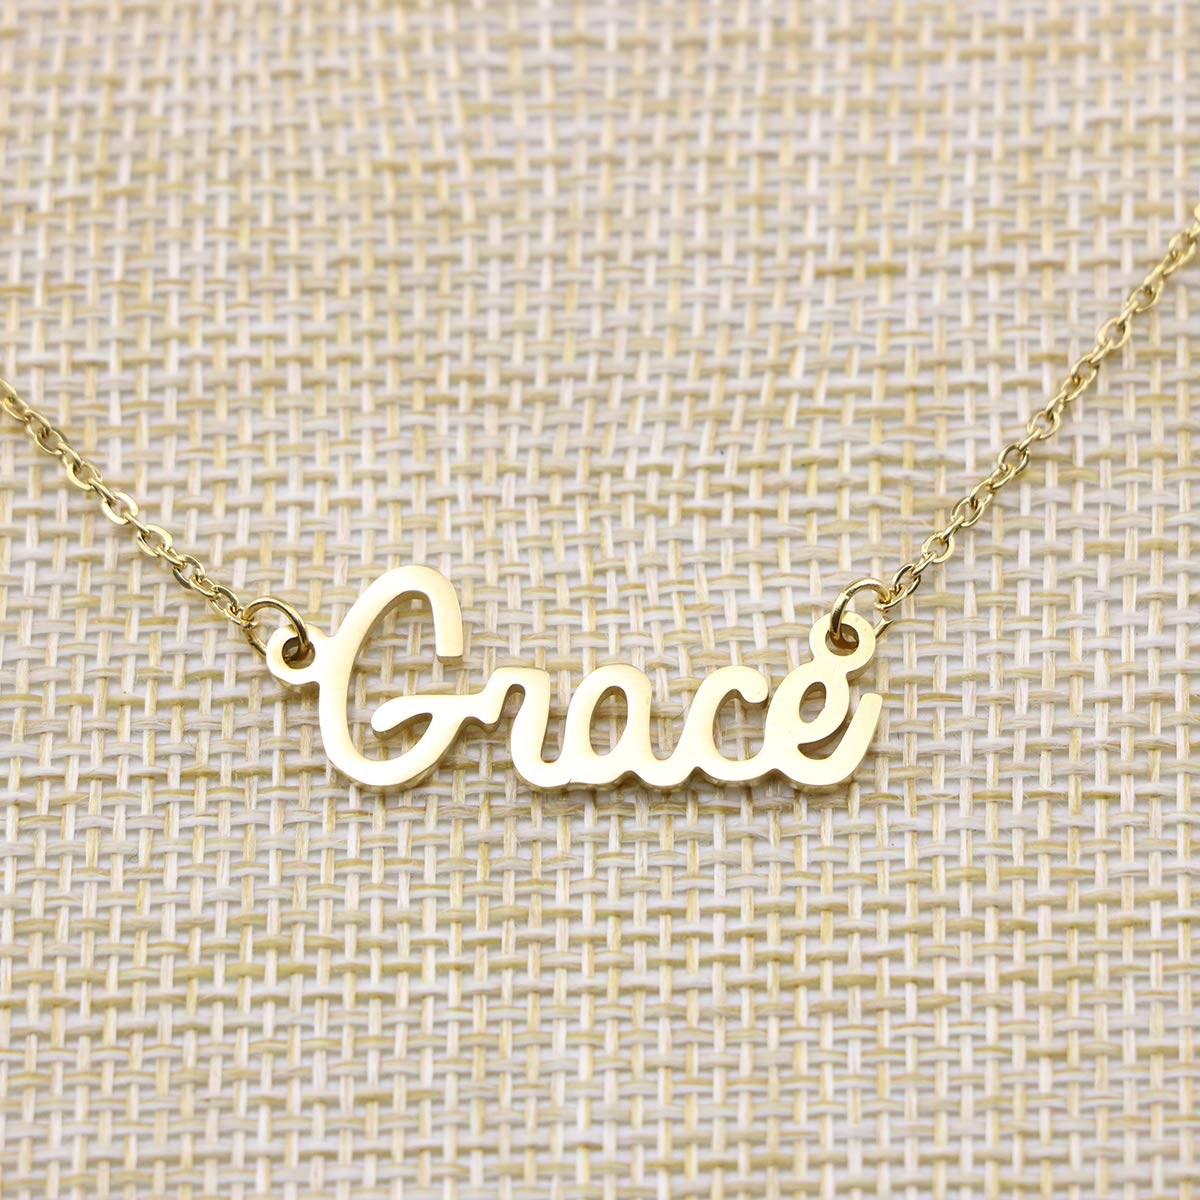 254666aad Yiyang Personalized Name Necklace 18K Gold Plated Stainless Steel Pendant  Jewelry Birthday Gift for Girls YN larger image